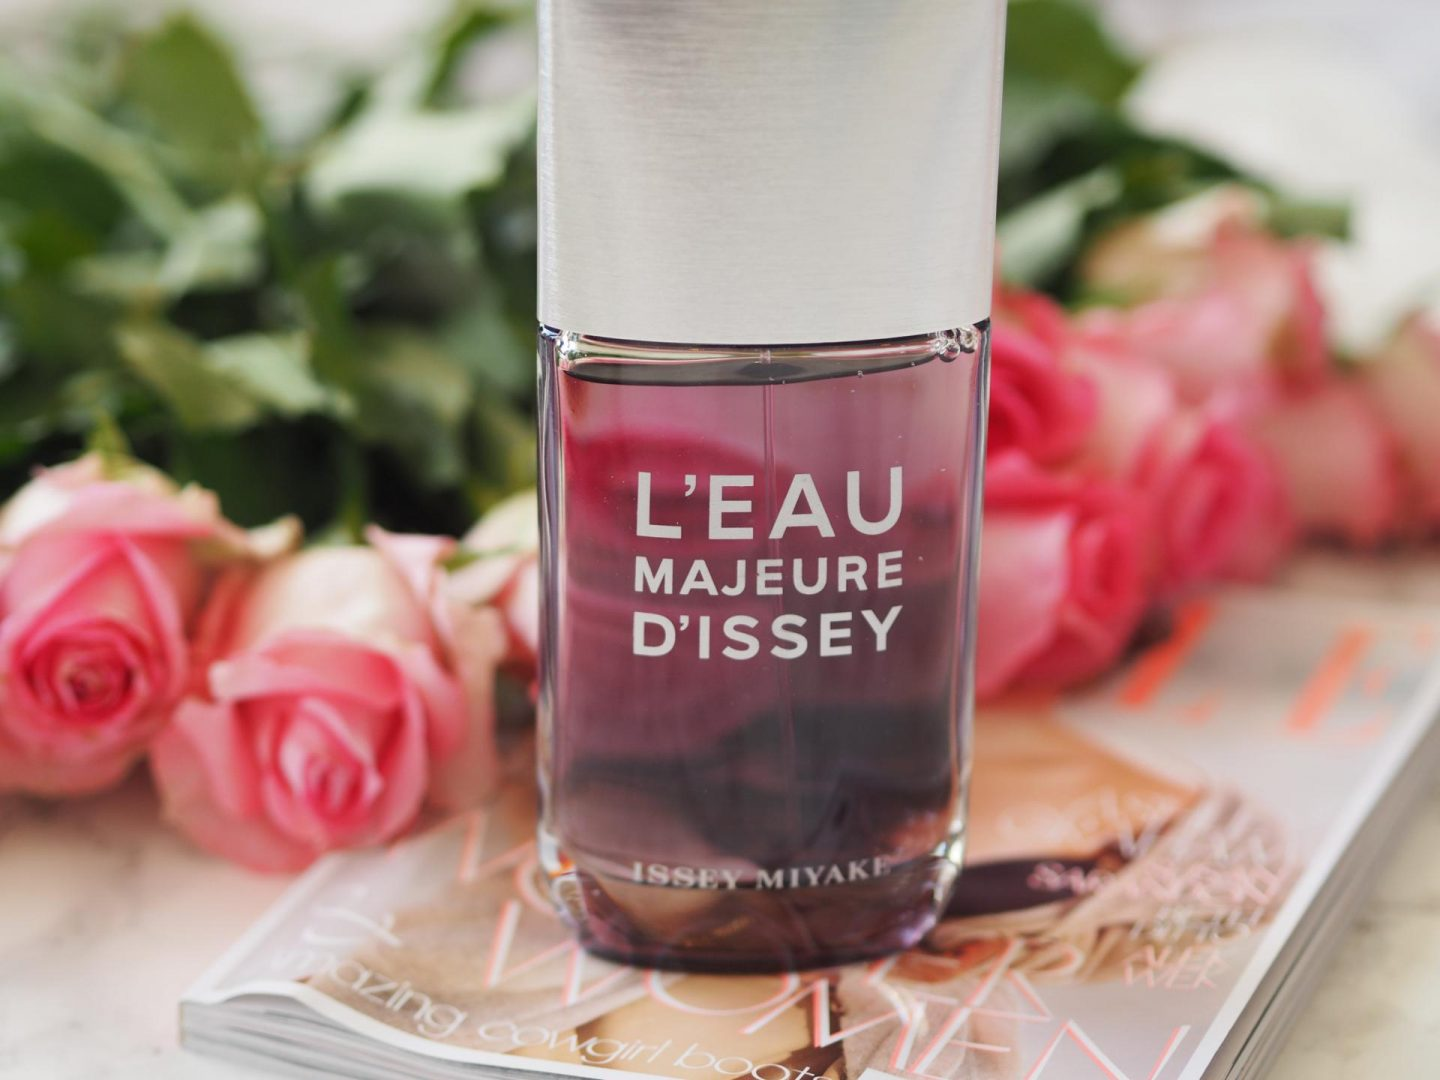 Issey Miyake L'Eau Majeure d' Issey